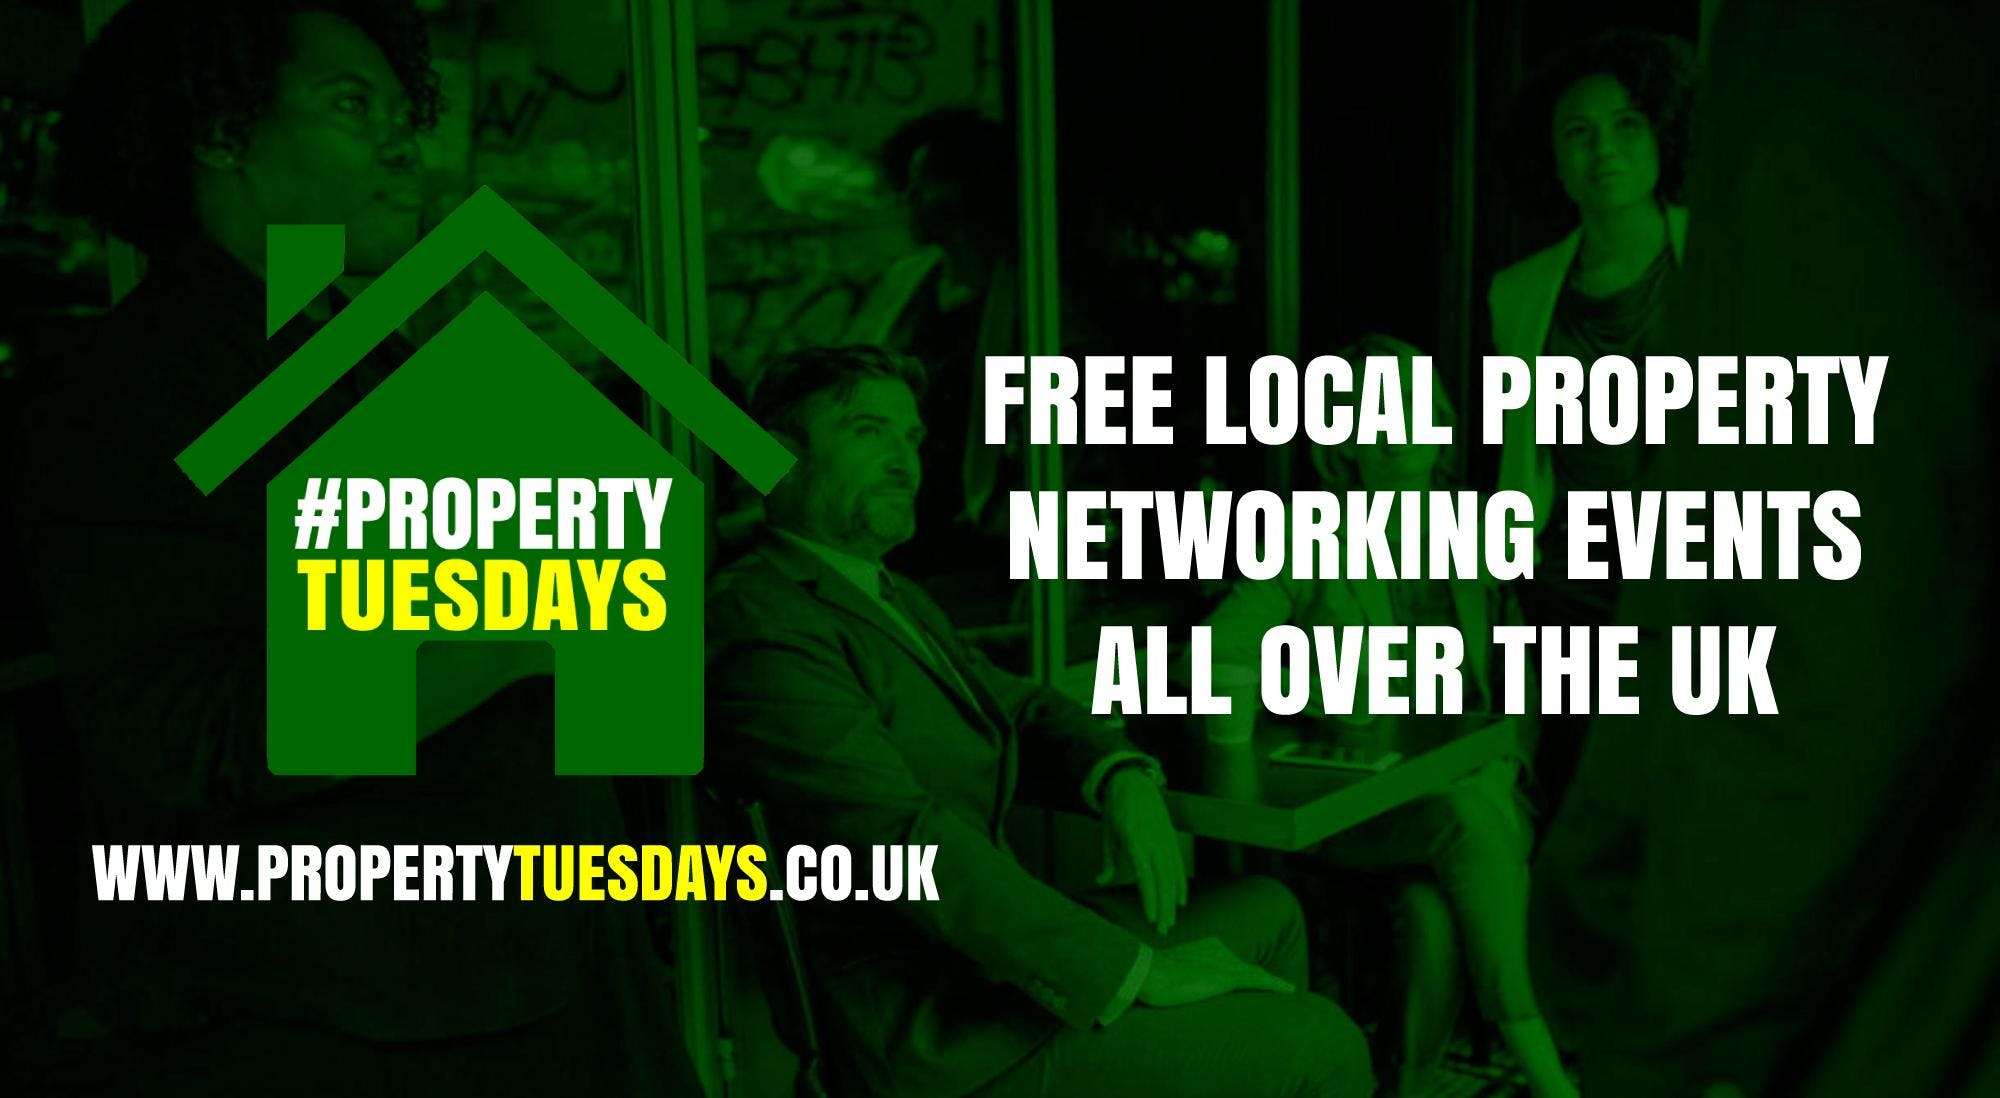 Property Tuesdays! Free property networking event in Rowley Regis